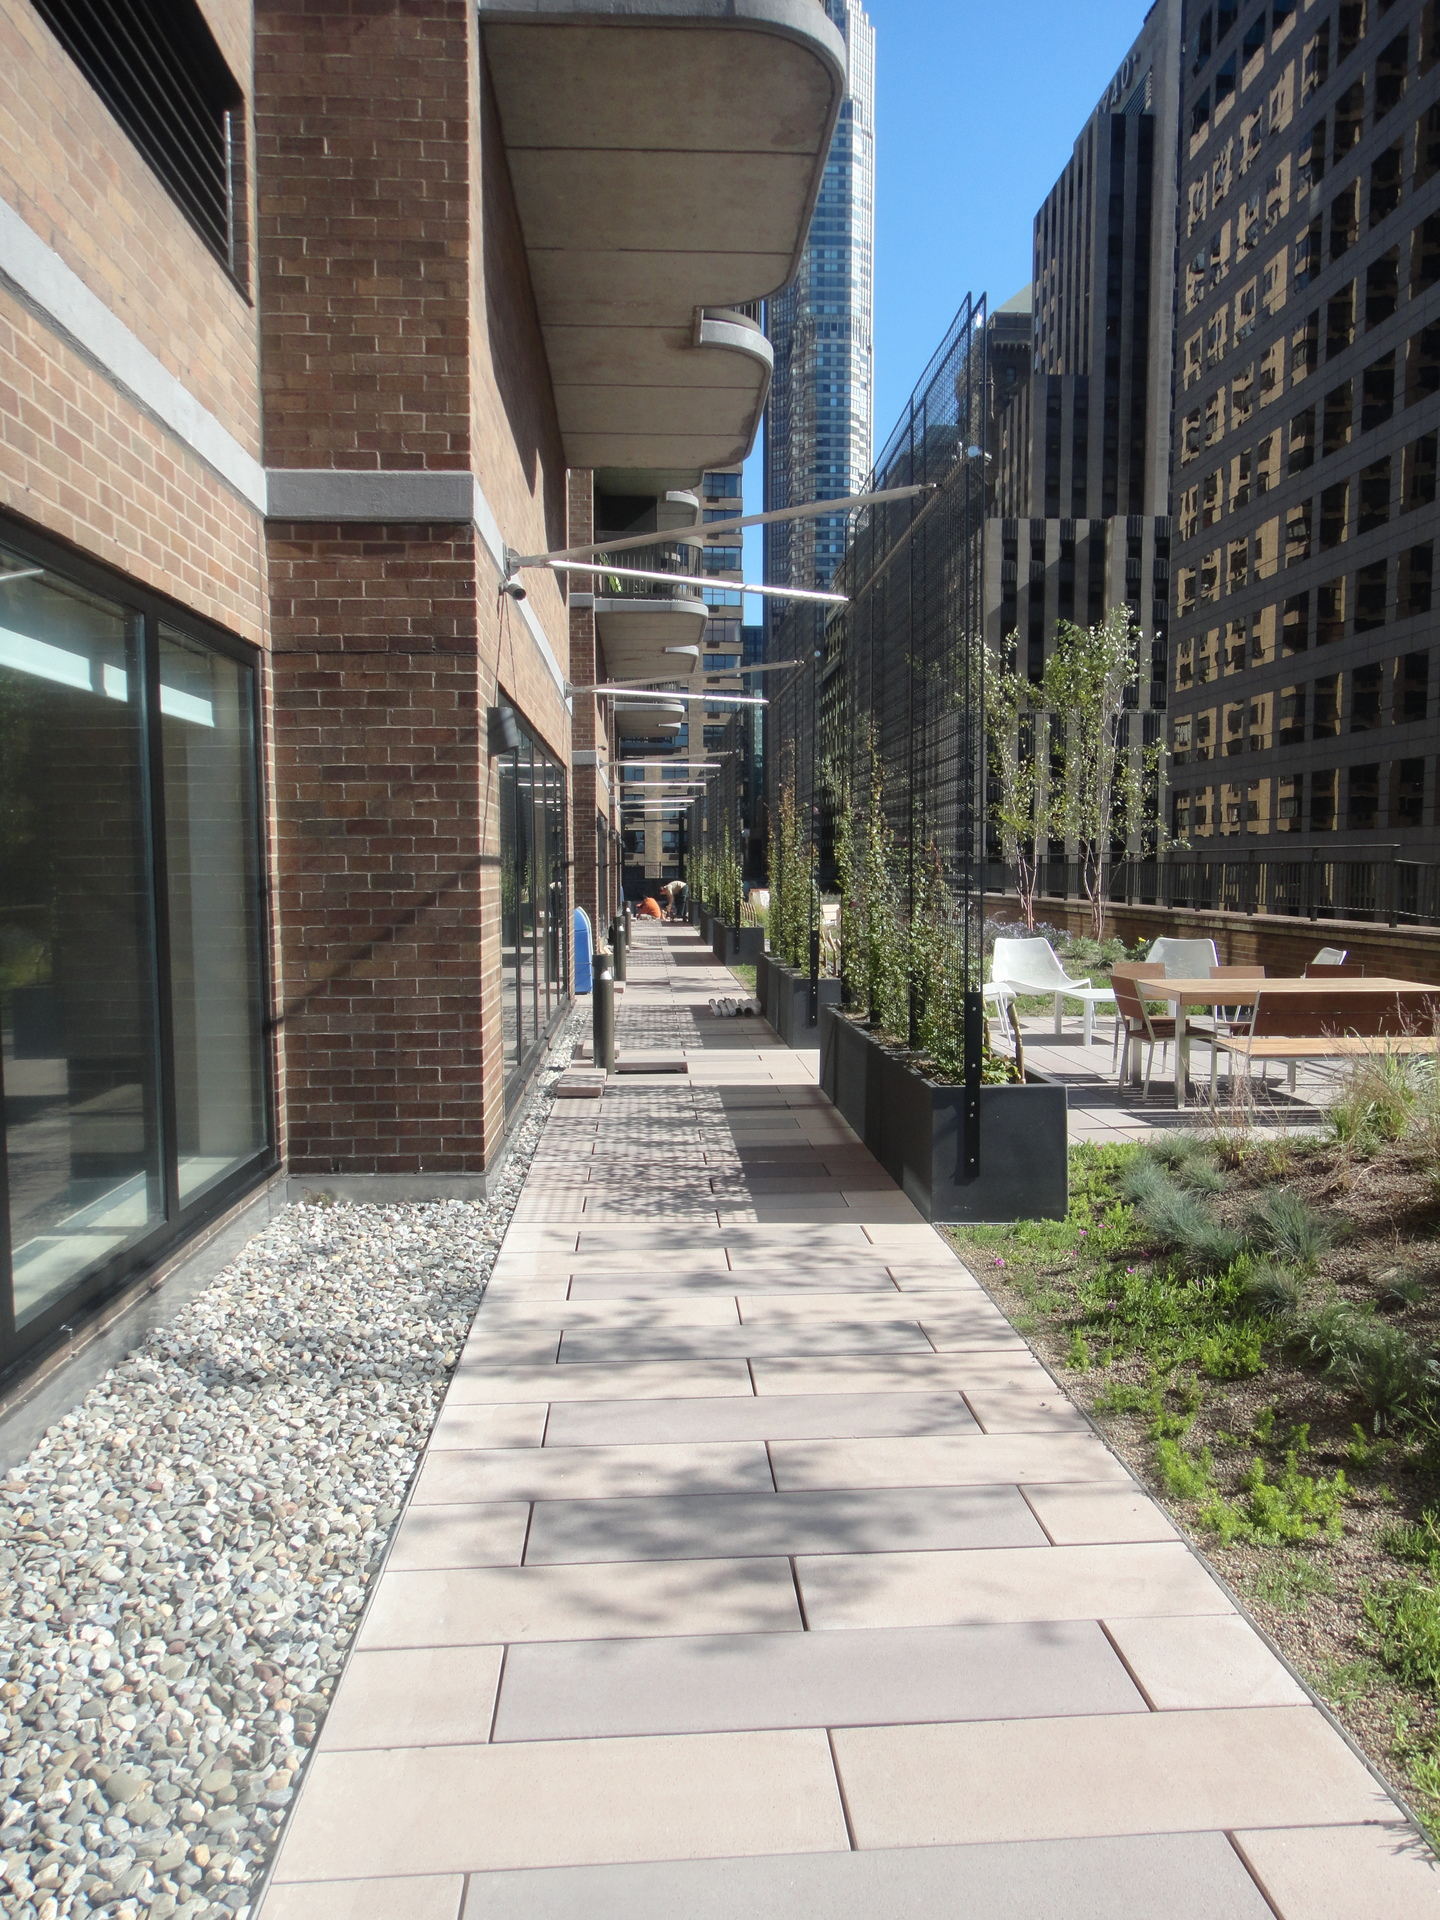 The Symphony House 9th floor setback was recently transformed into a 12,000 sq ft eco-friendly tenant amenity, featuring attractive pavers supported by Bison Pedestals, planting areas, trees, scrubs, and seating areas.